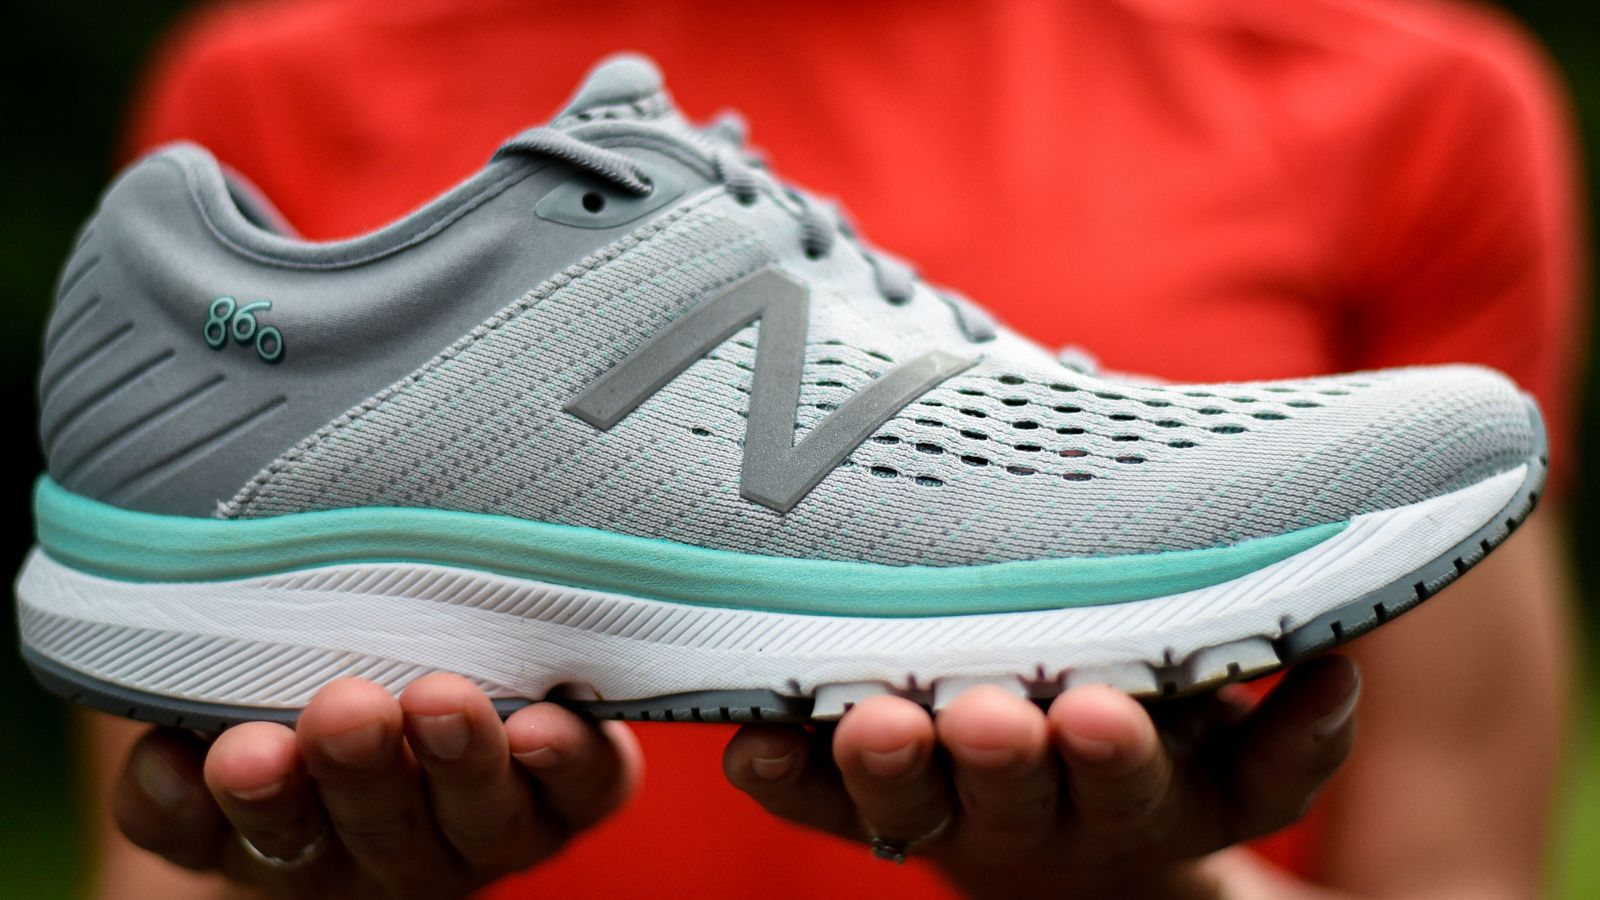 Cuña boleto Aumentar  Shoe Review: New Balance 860v10 | Fleet Feet